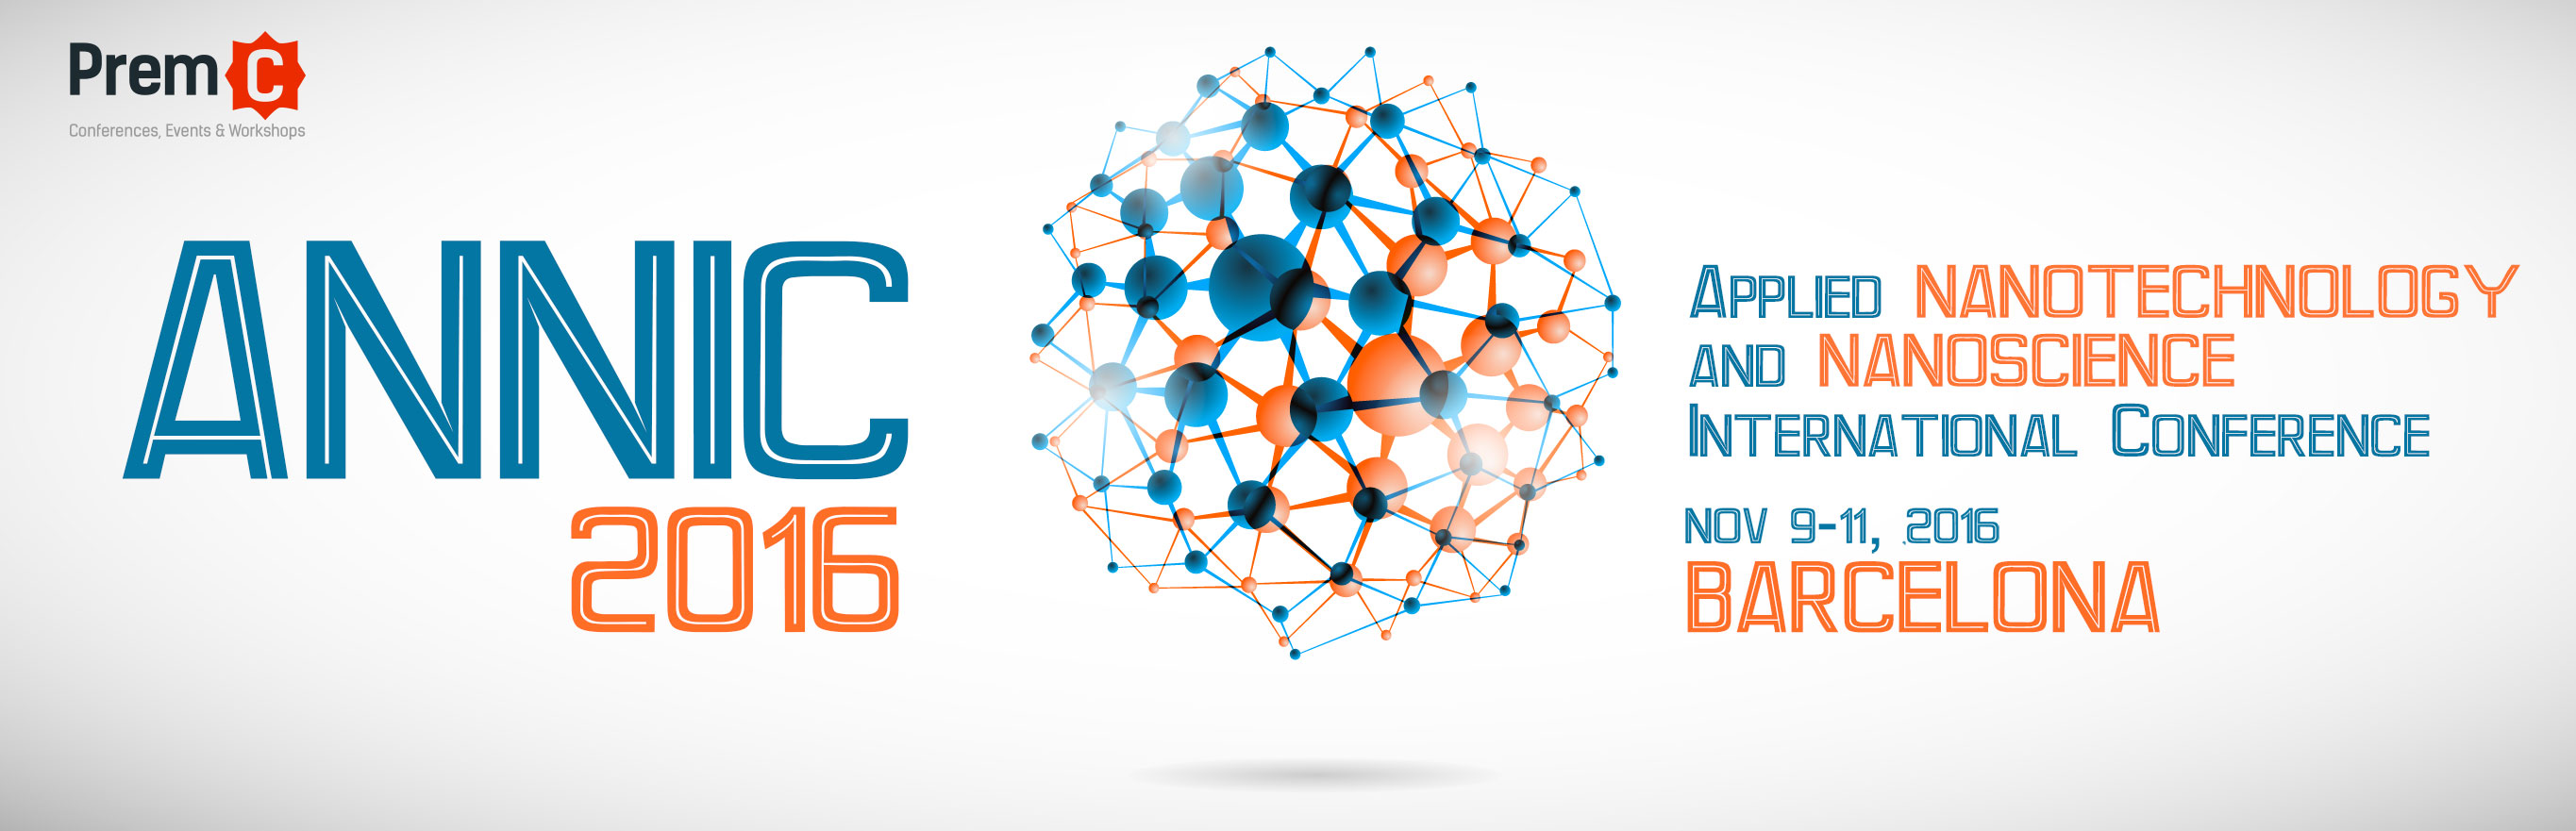 ANNIC 2016 - Applied Nanotechnology and Nanoscience International Conference